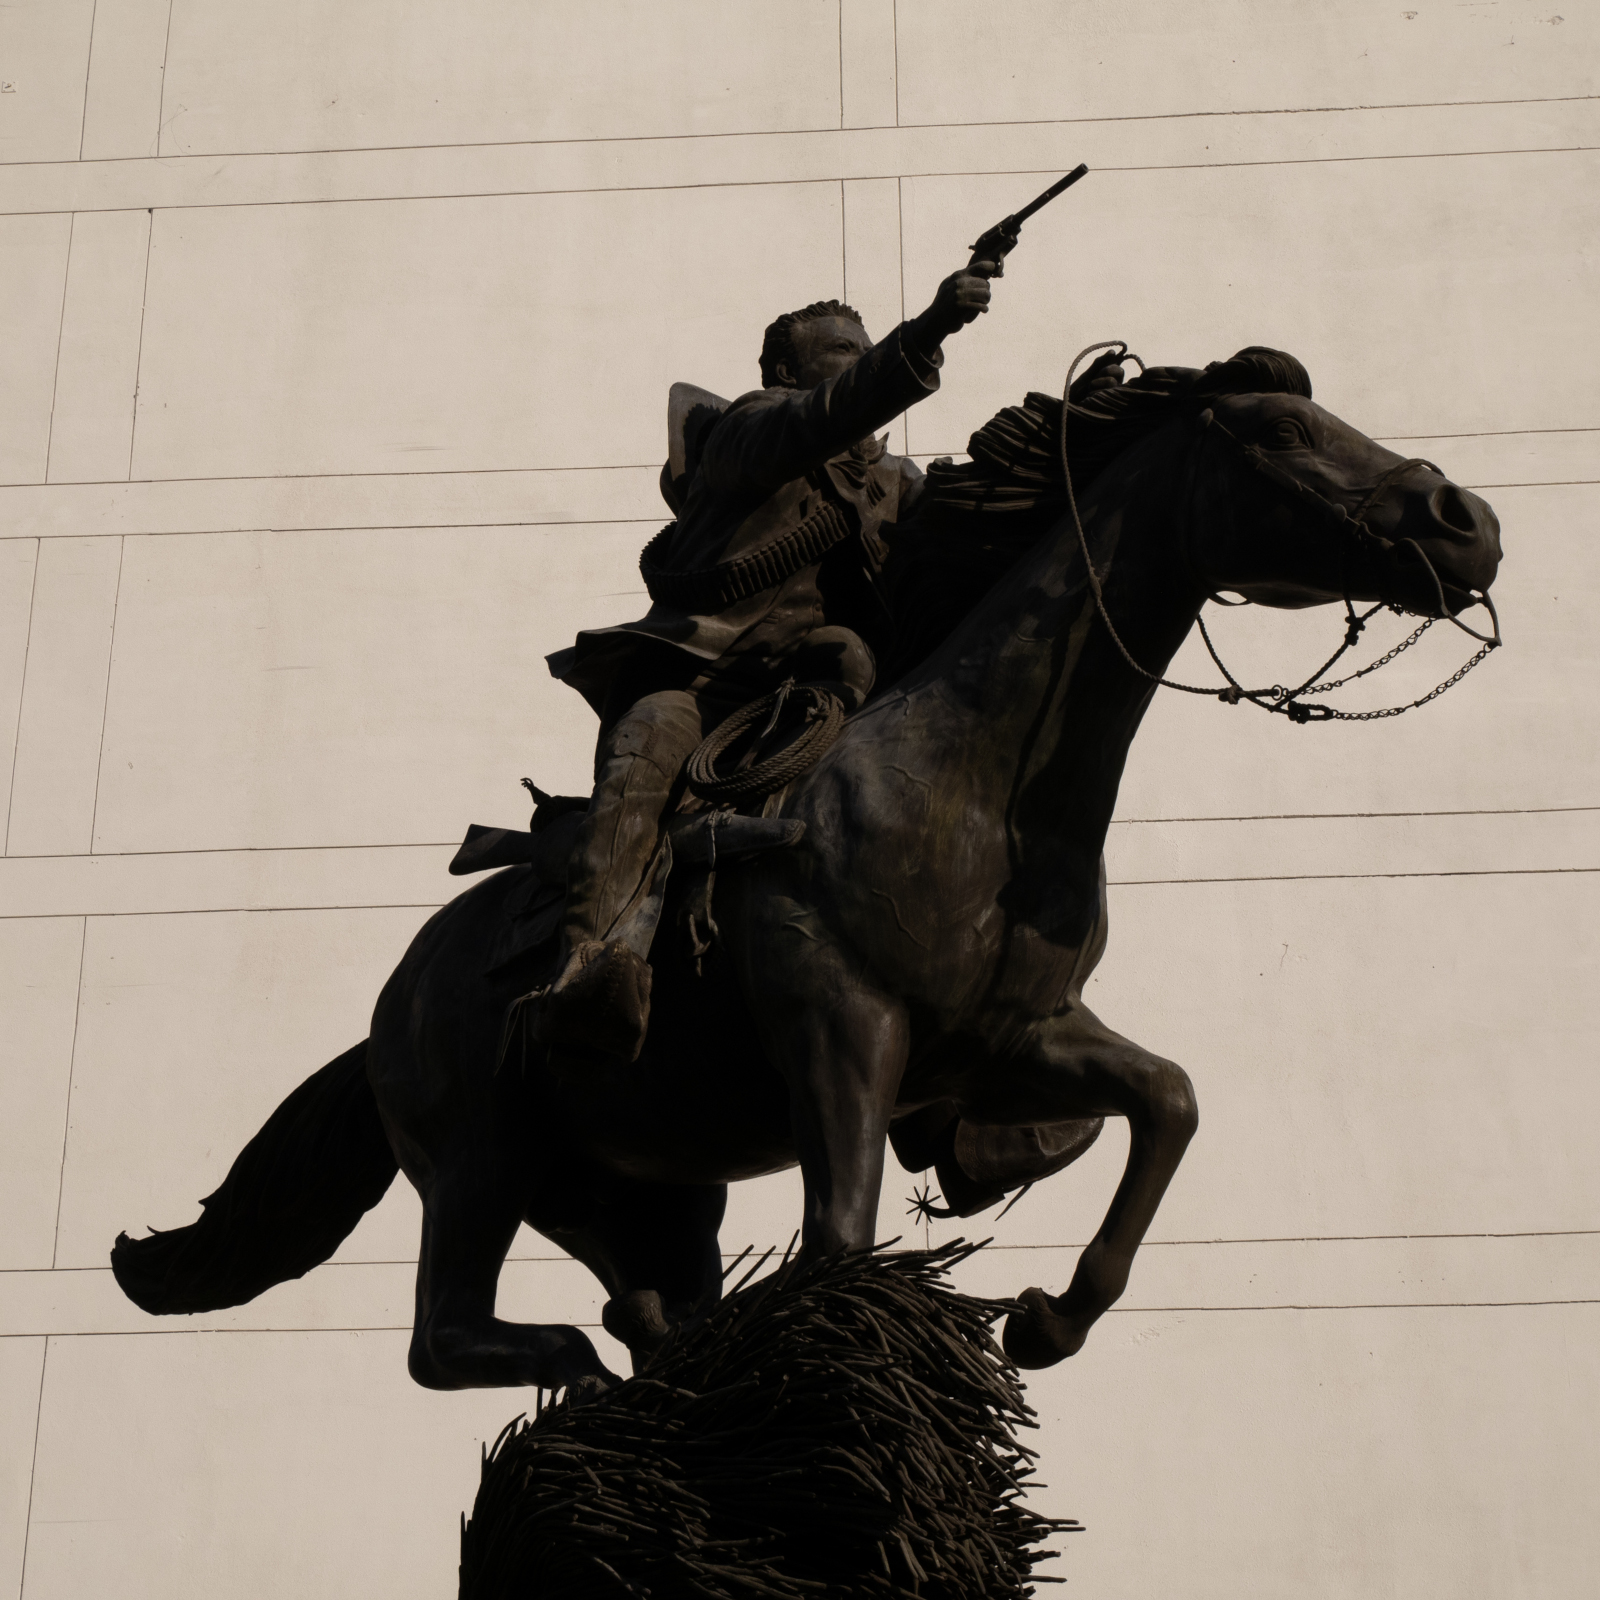 Another equestrian statue of Pancho Villa, this one in Chihuahua city.